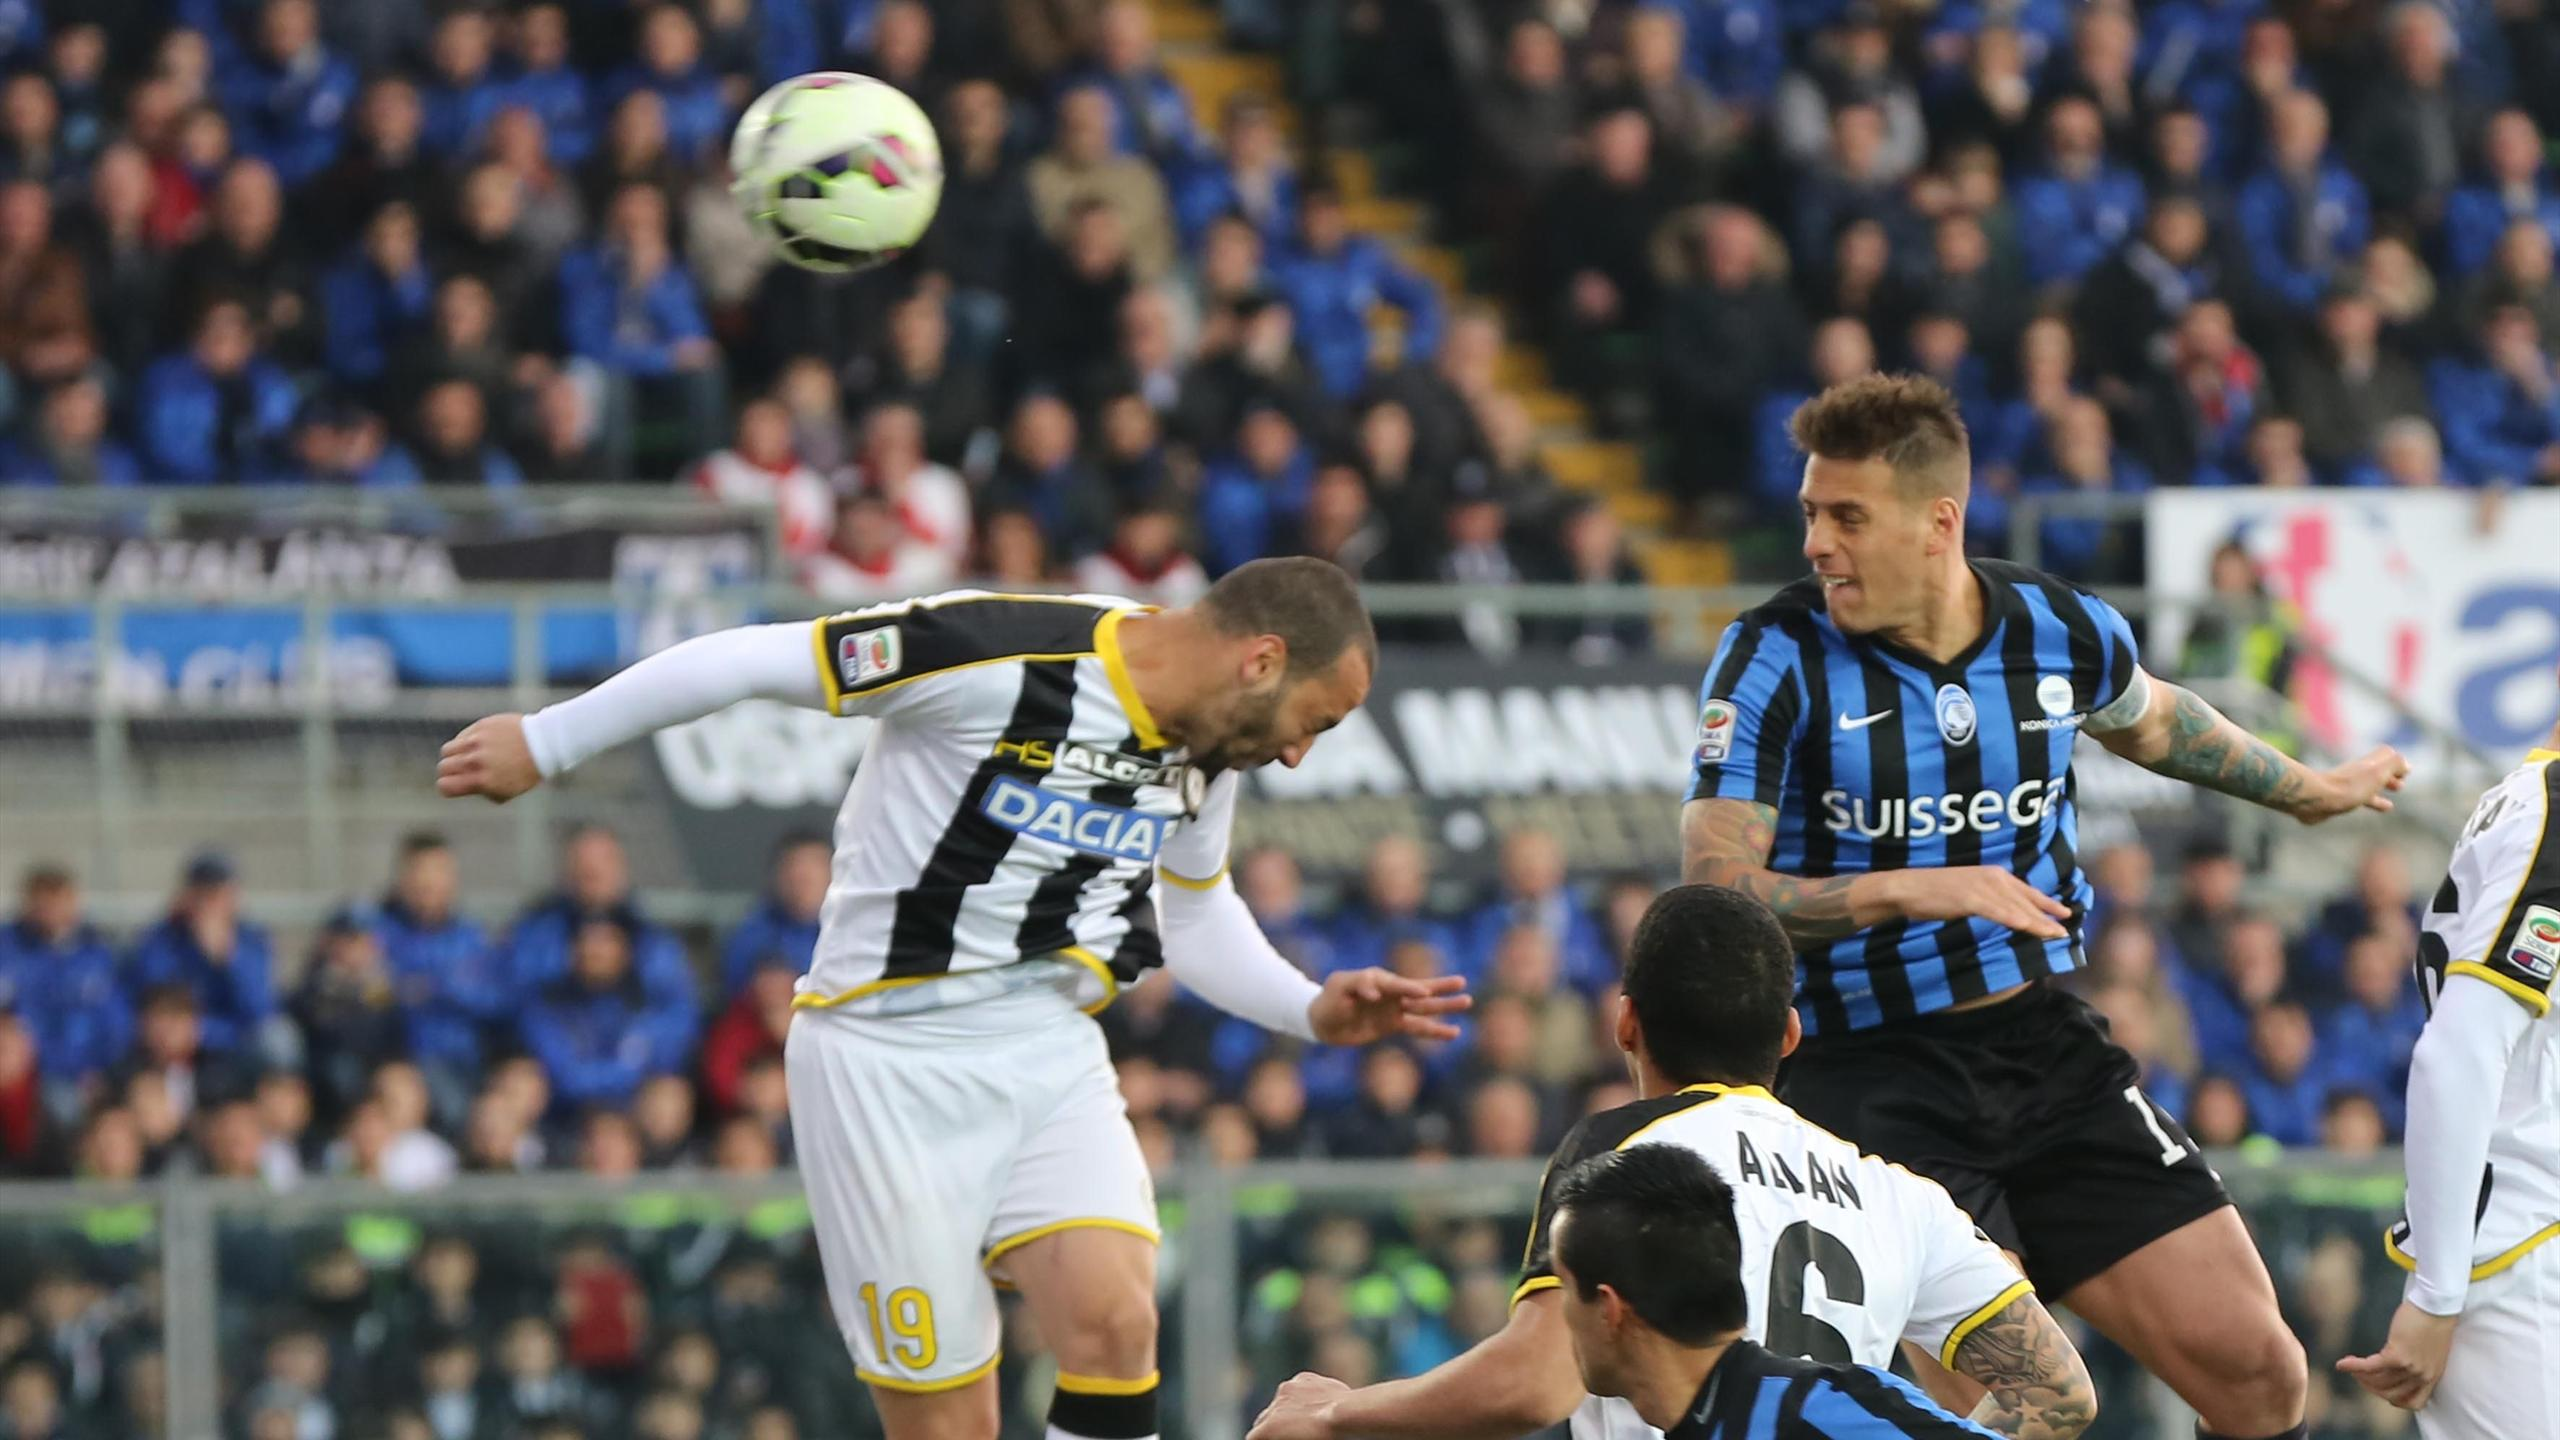 Video: Atalanta vs Udinese